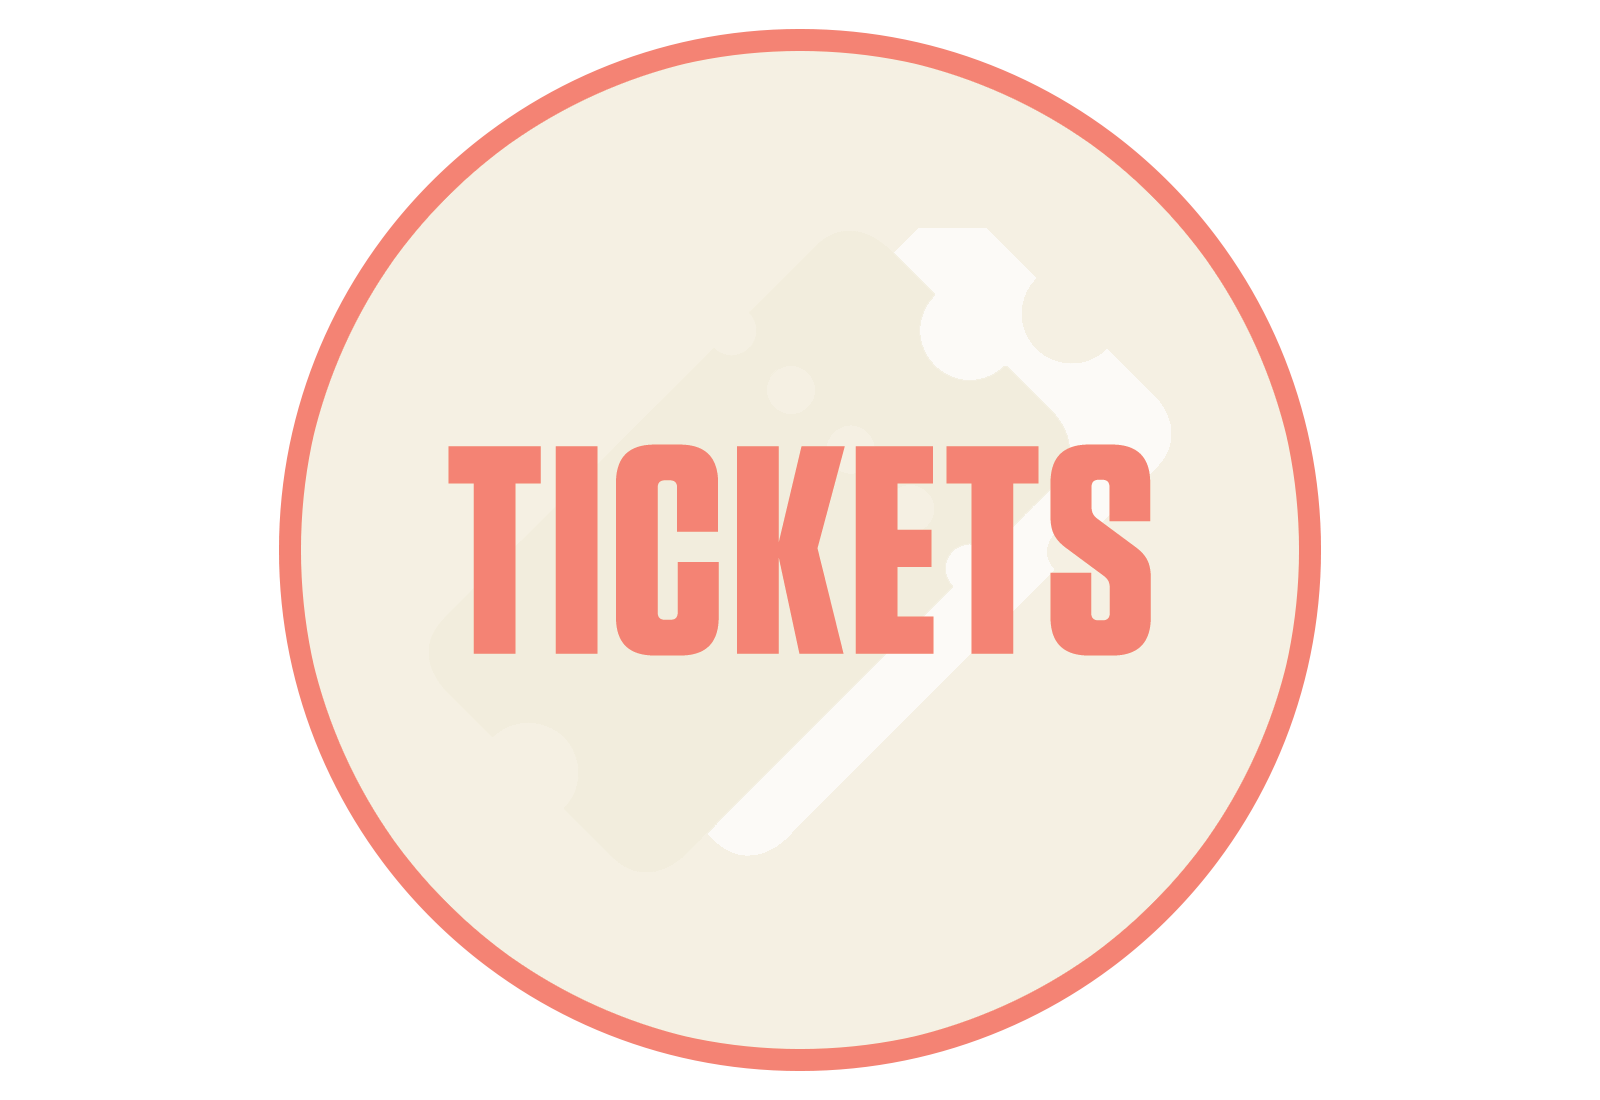 tickets1.png